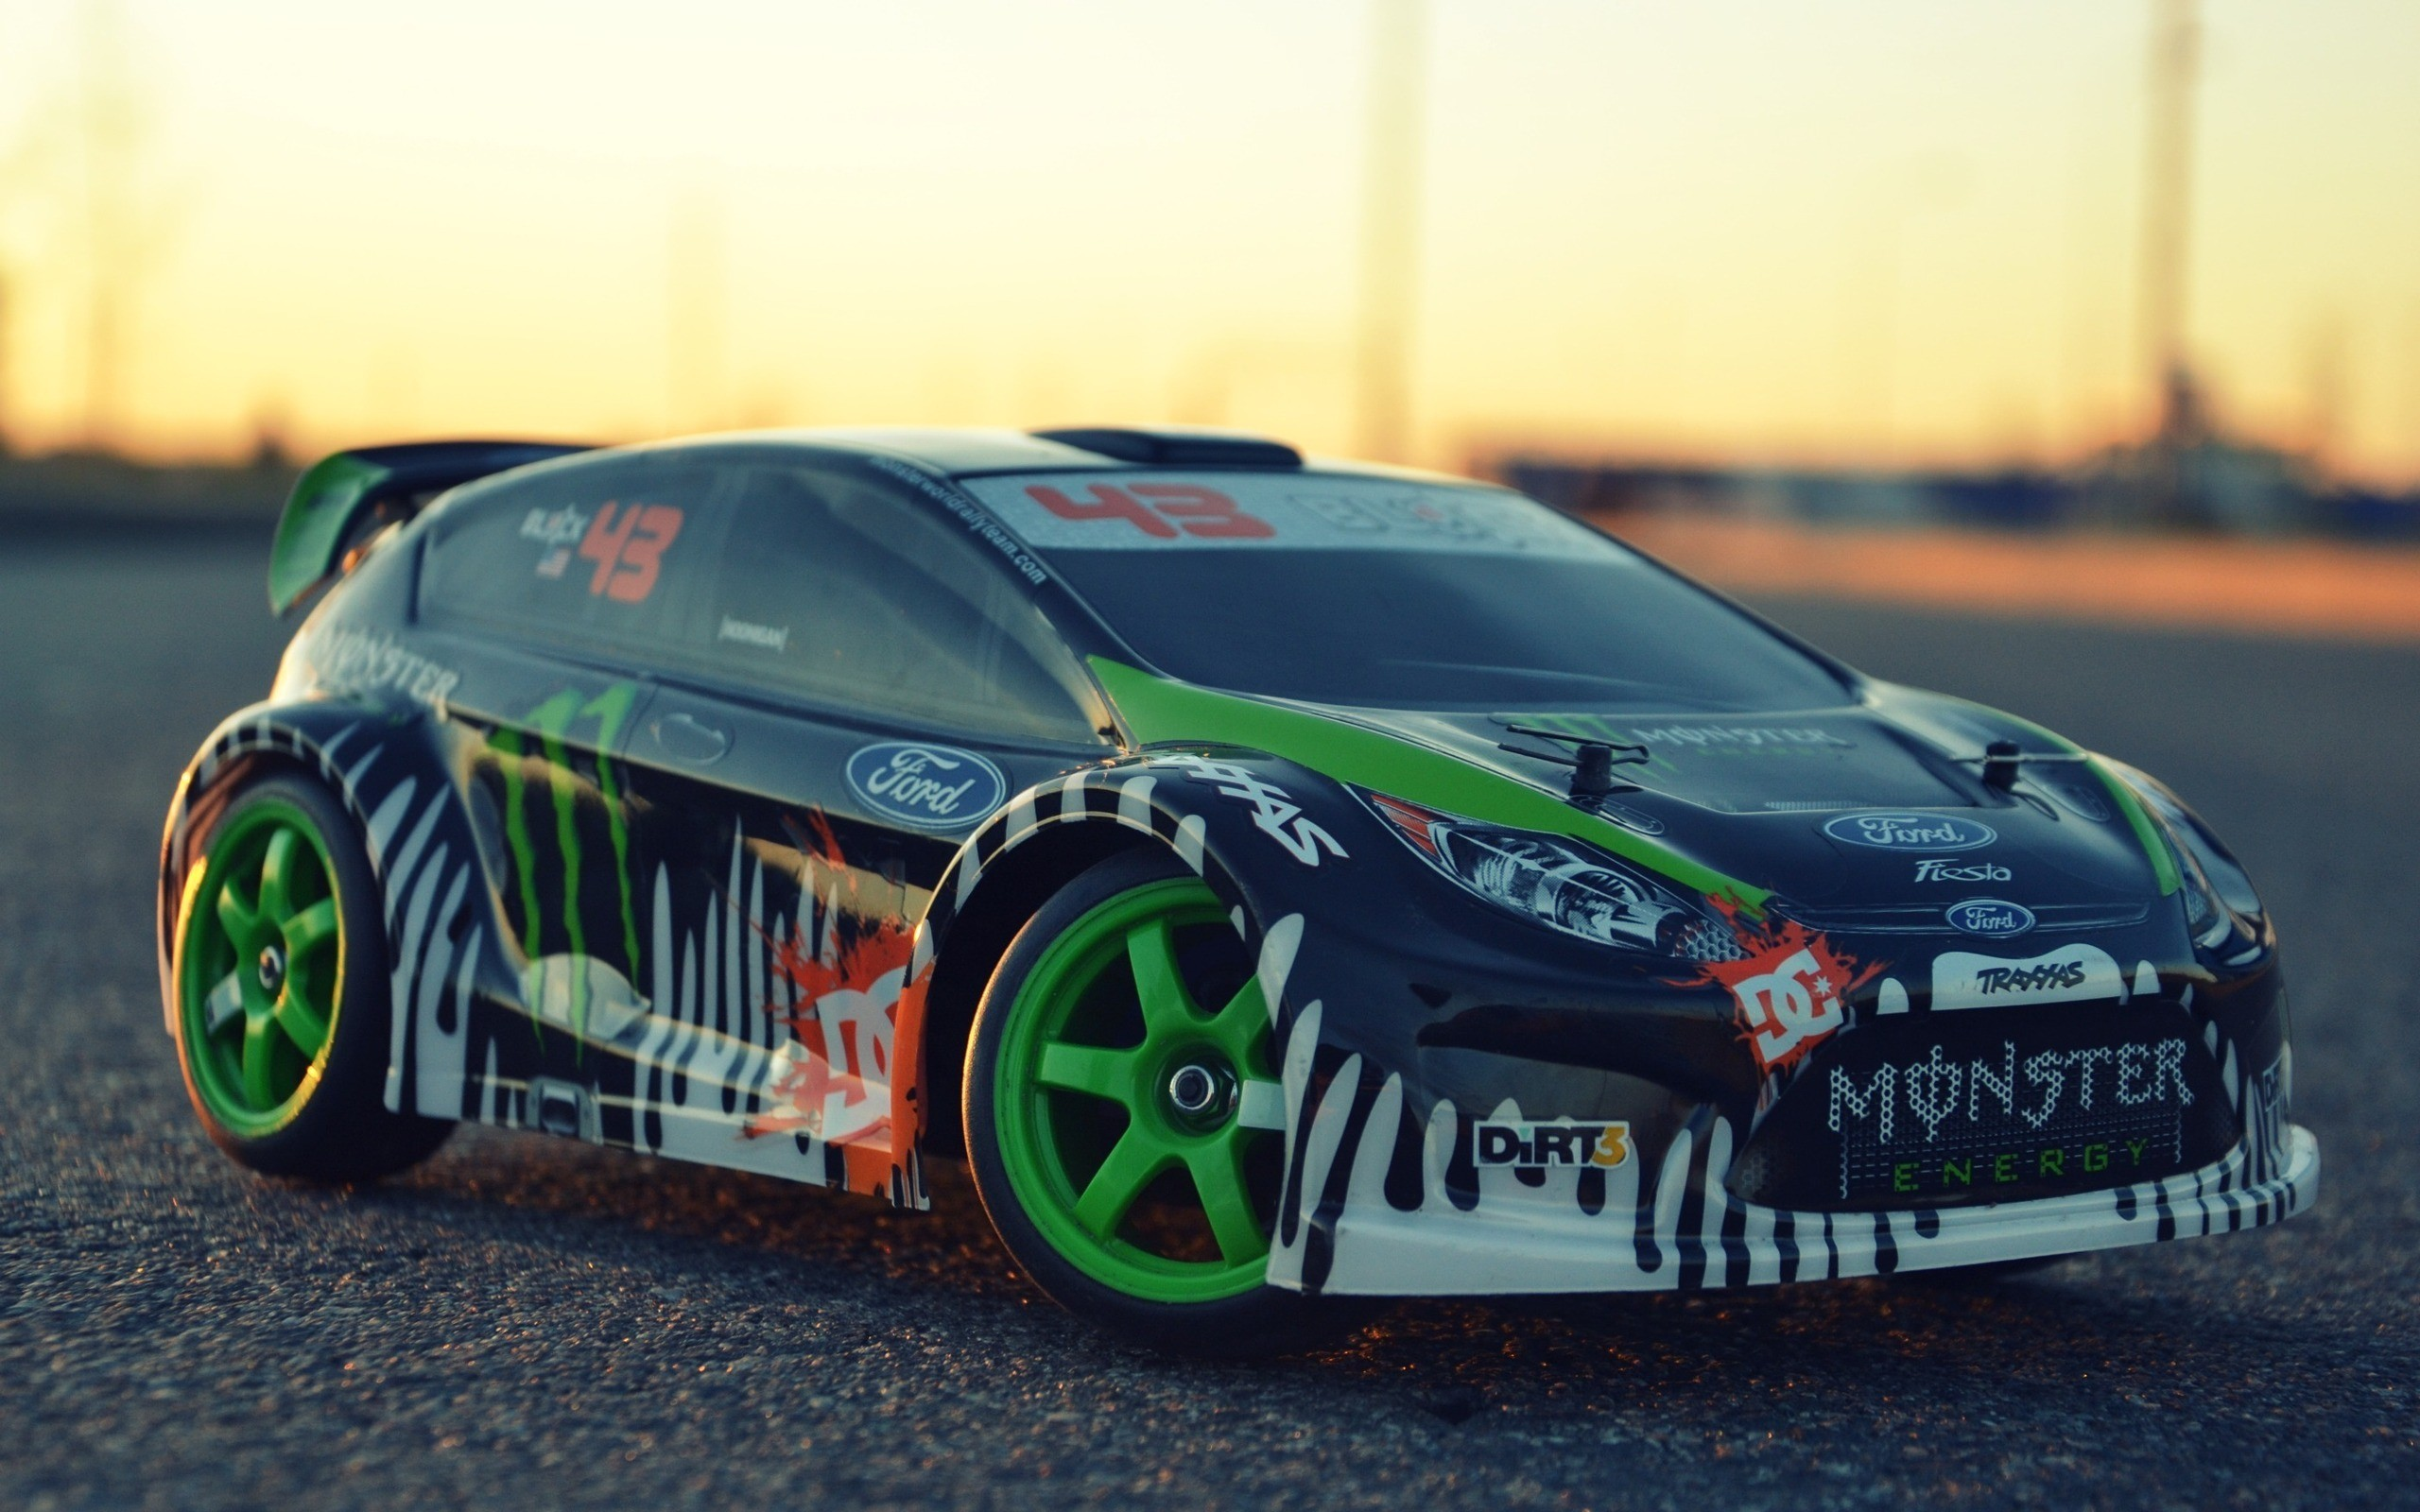 2560x1600 Ken block ford fiesta dc shoes toy cars traxxas wallpaper |  |  10403 | WallpaperUP